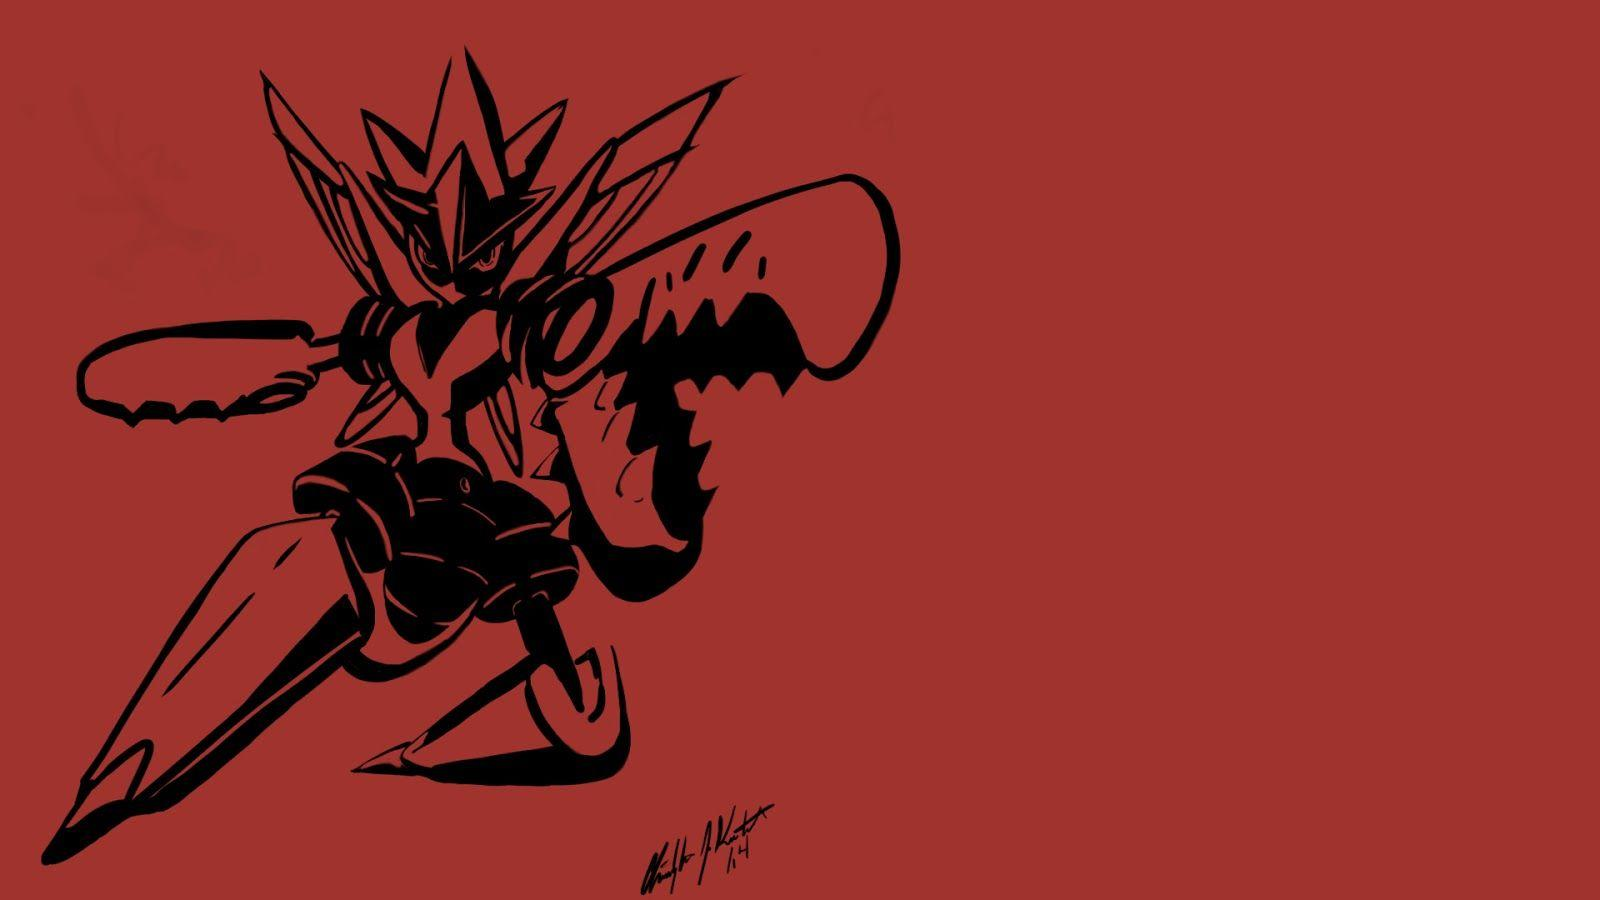 Wallpaper: Scizor Wallpapers